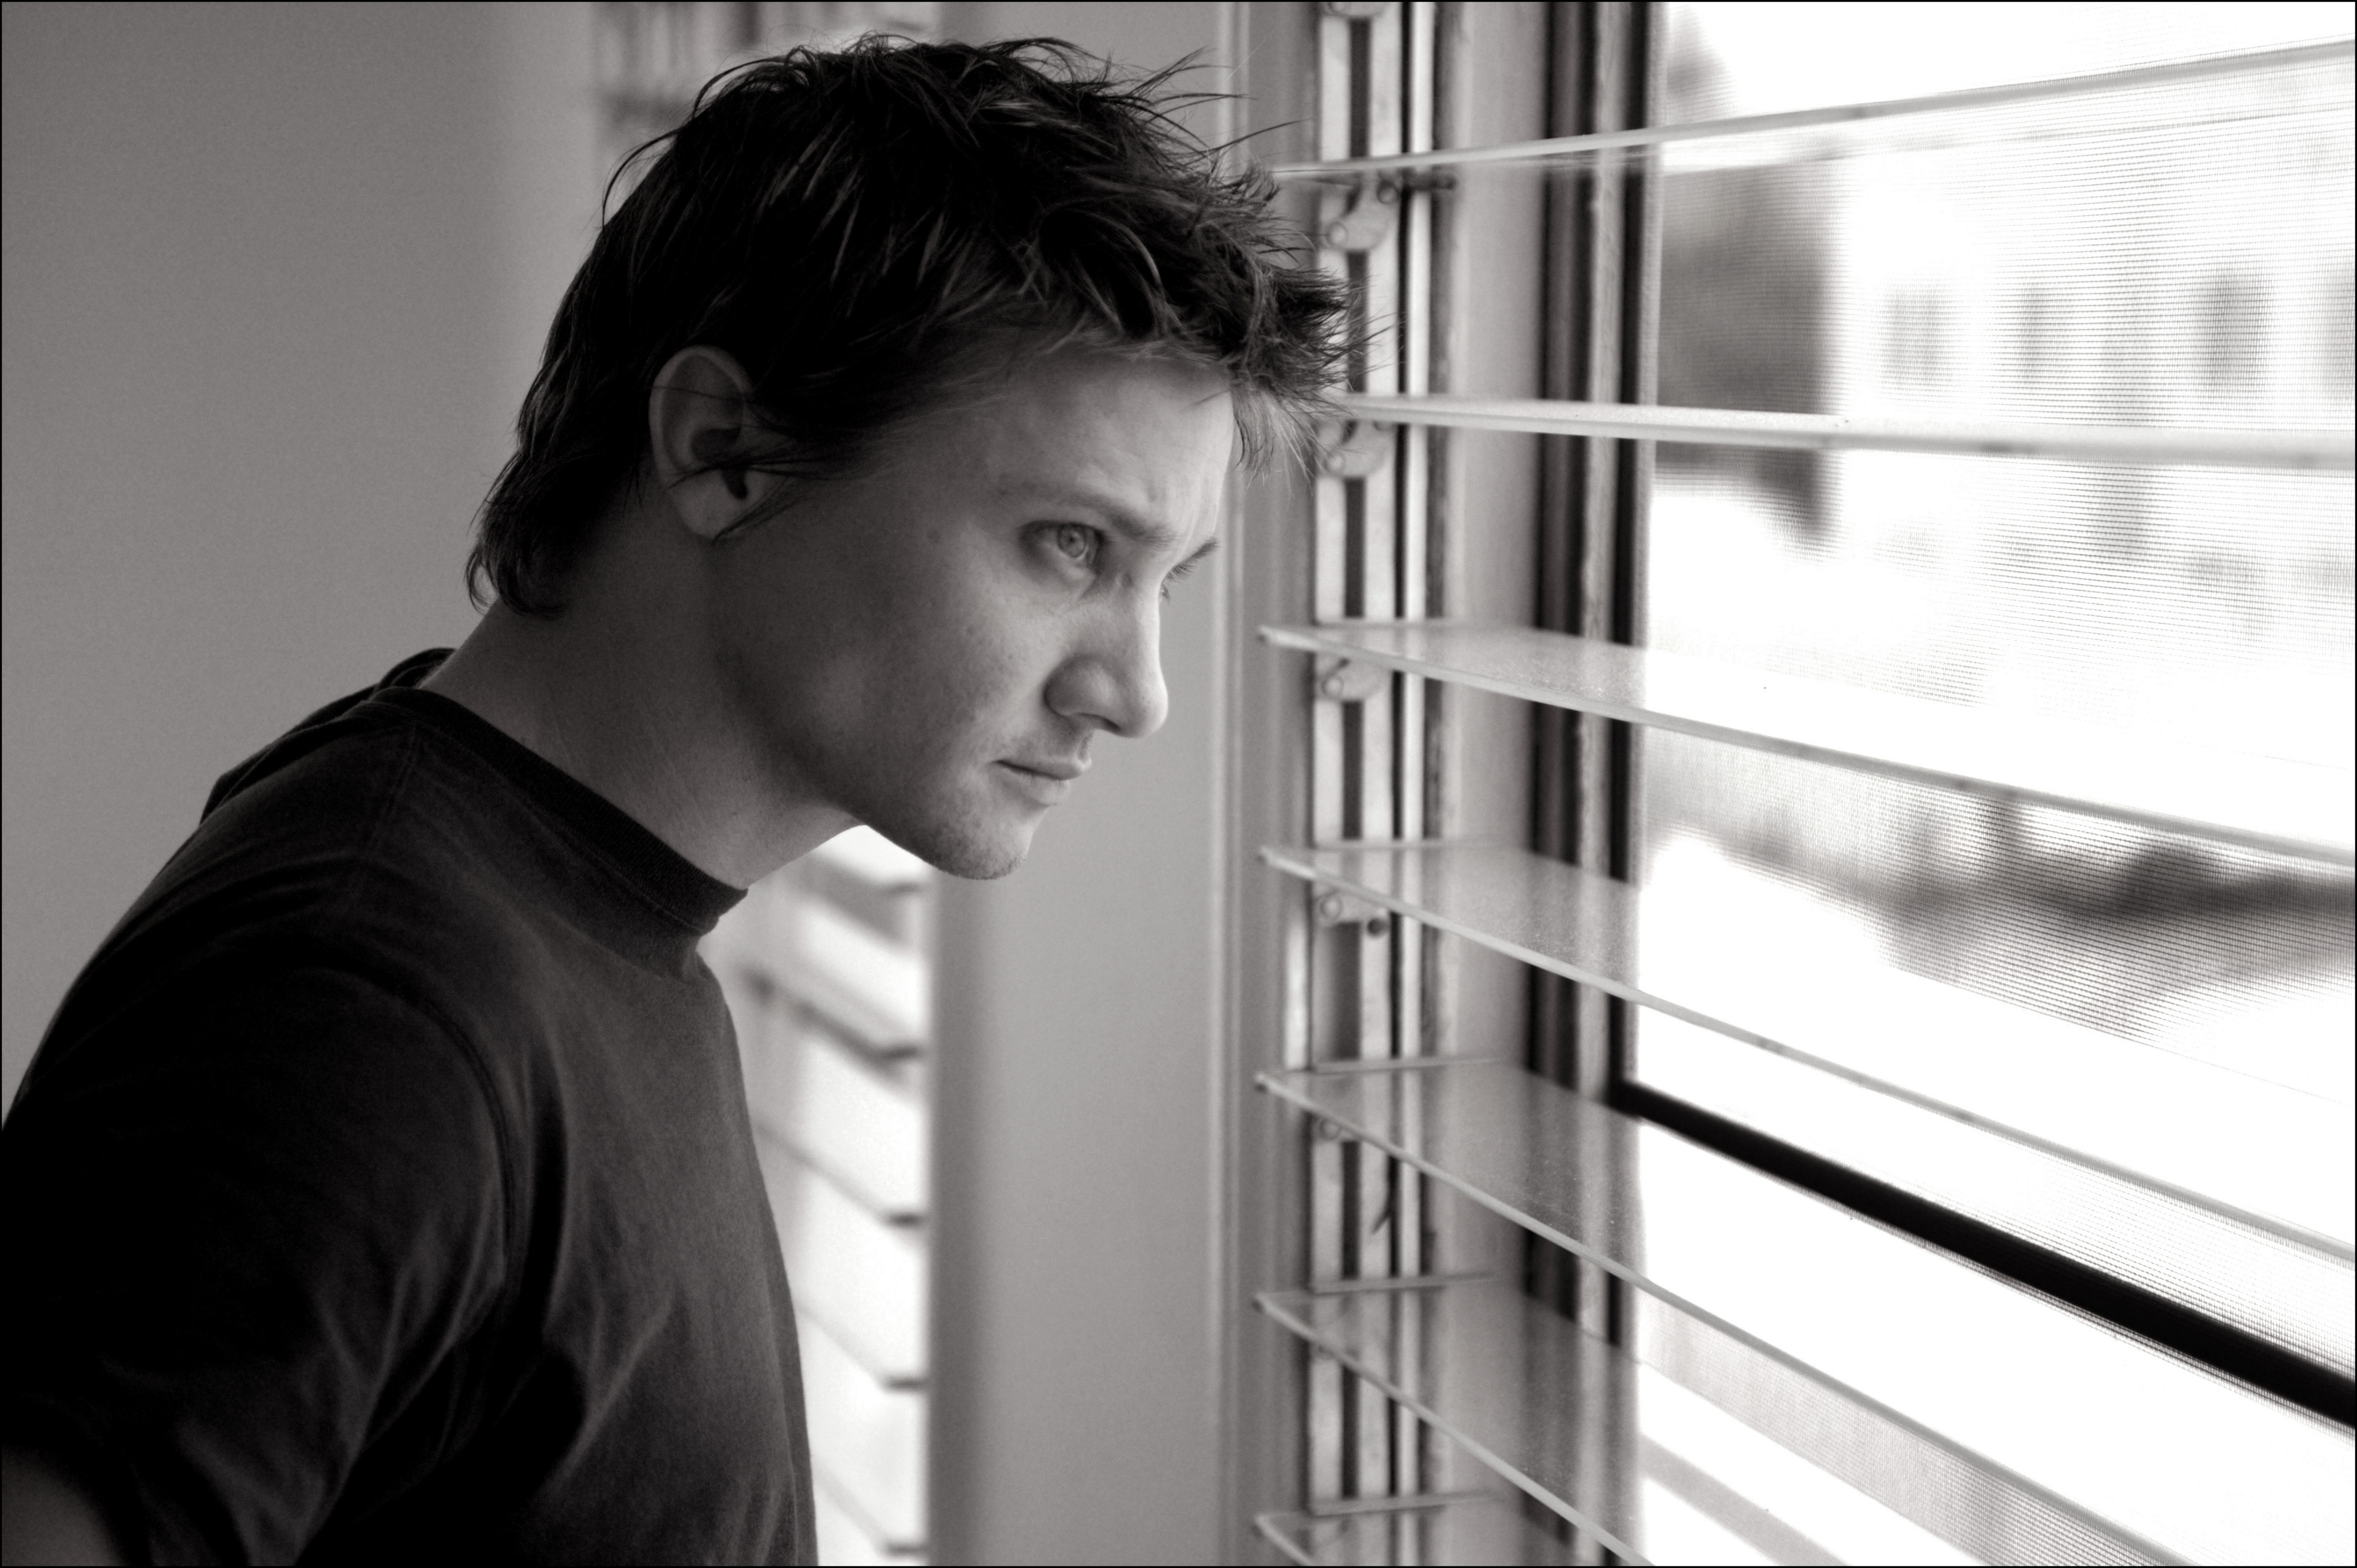 4000x2661 - Jeremy Renner Wallpapers 16